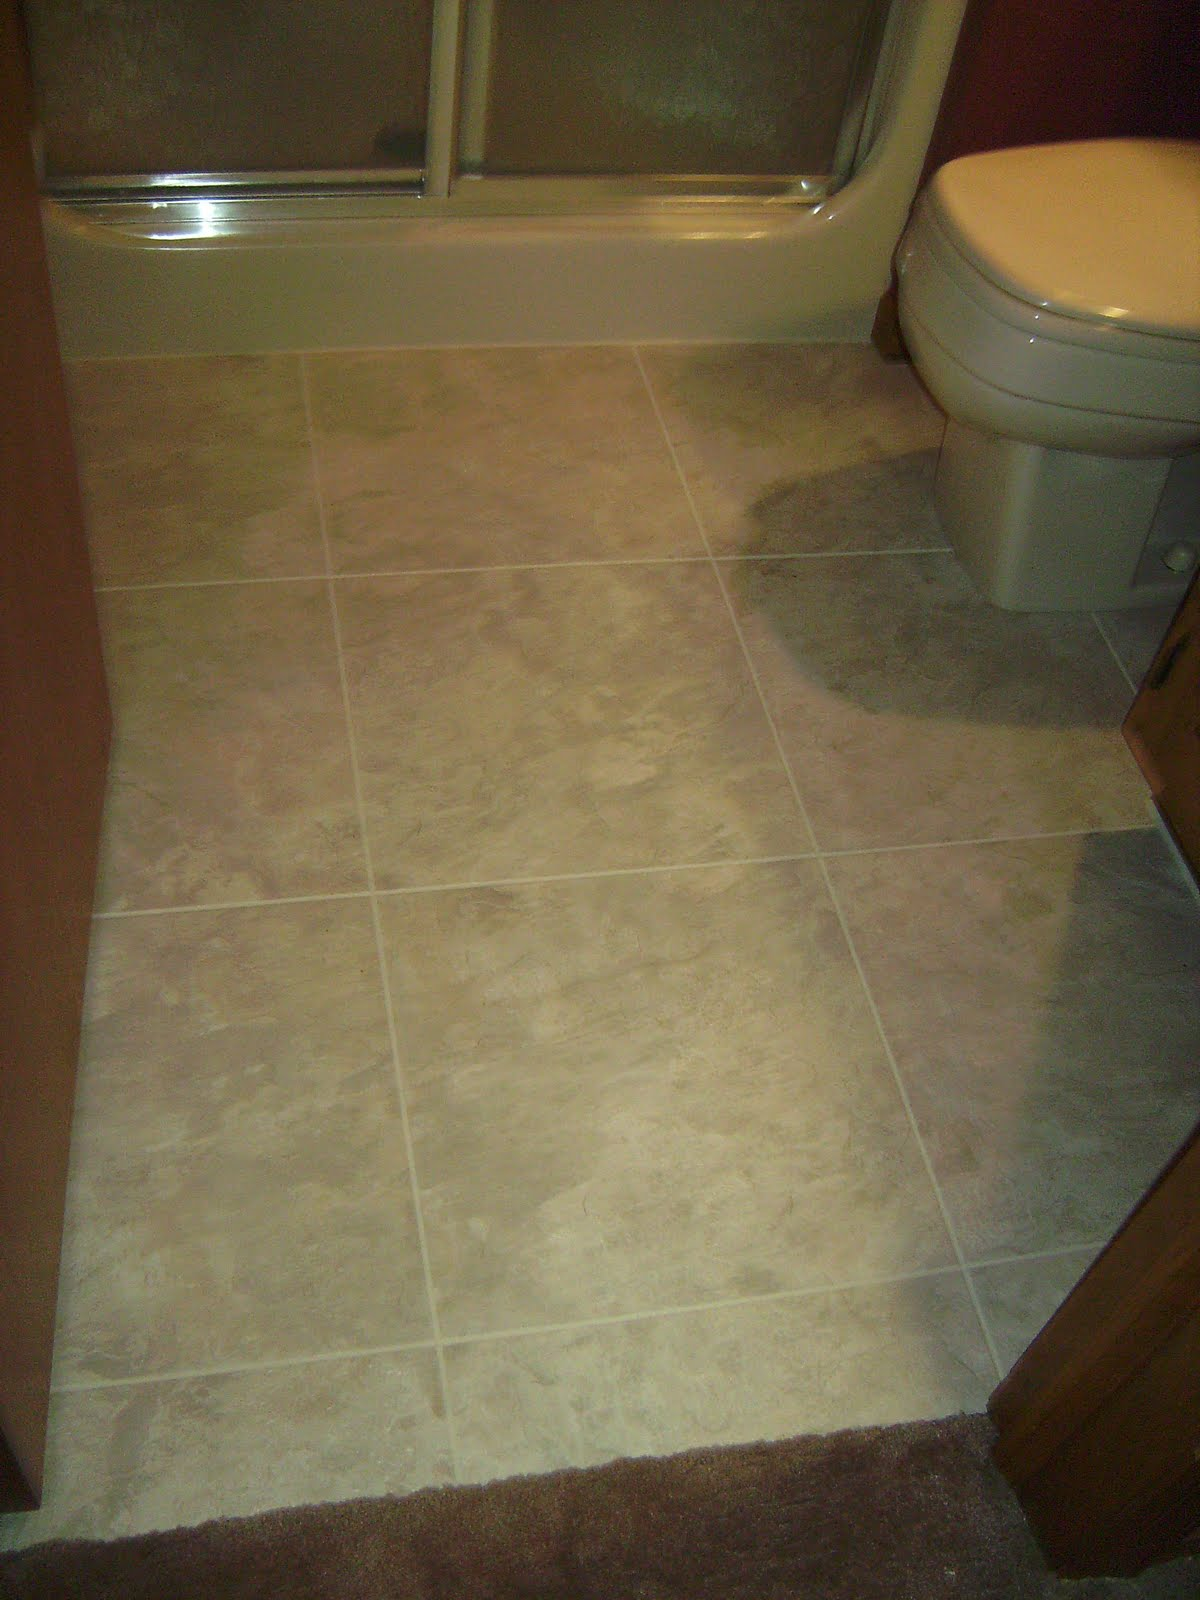 Floor Tiles Lifting In Bathroom : Knapp tile and flooring inc luxury vinyl bathroom